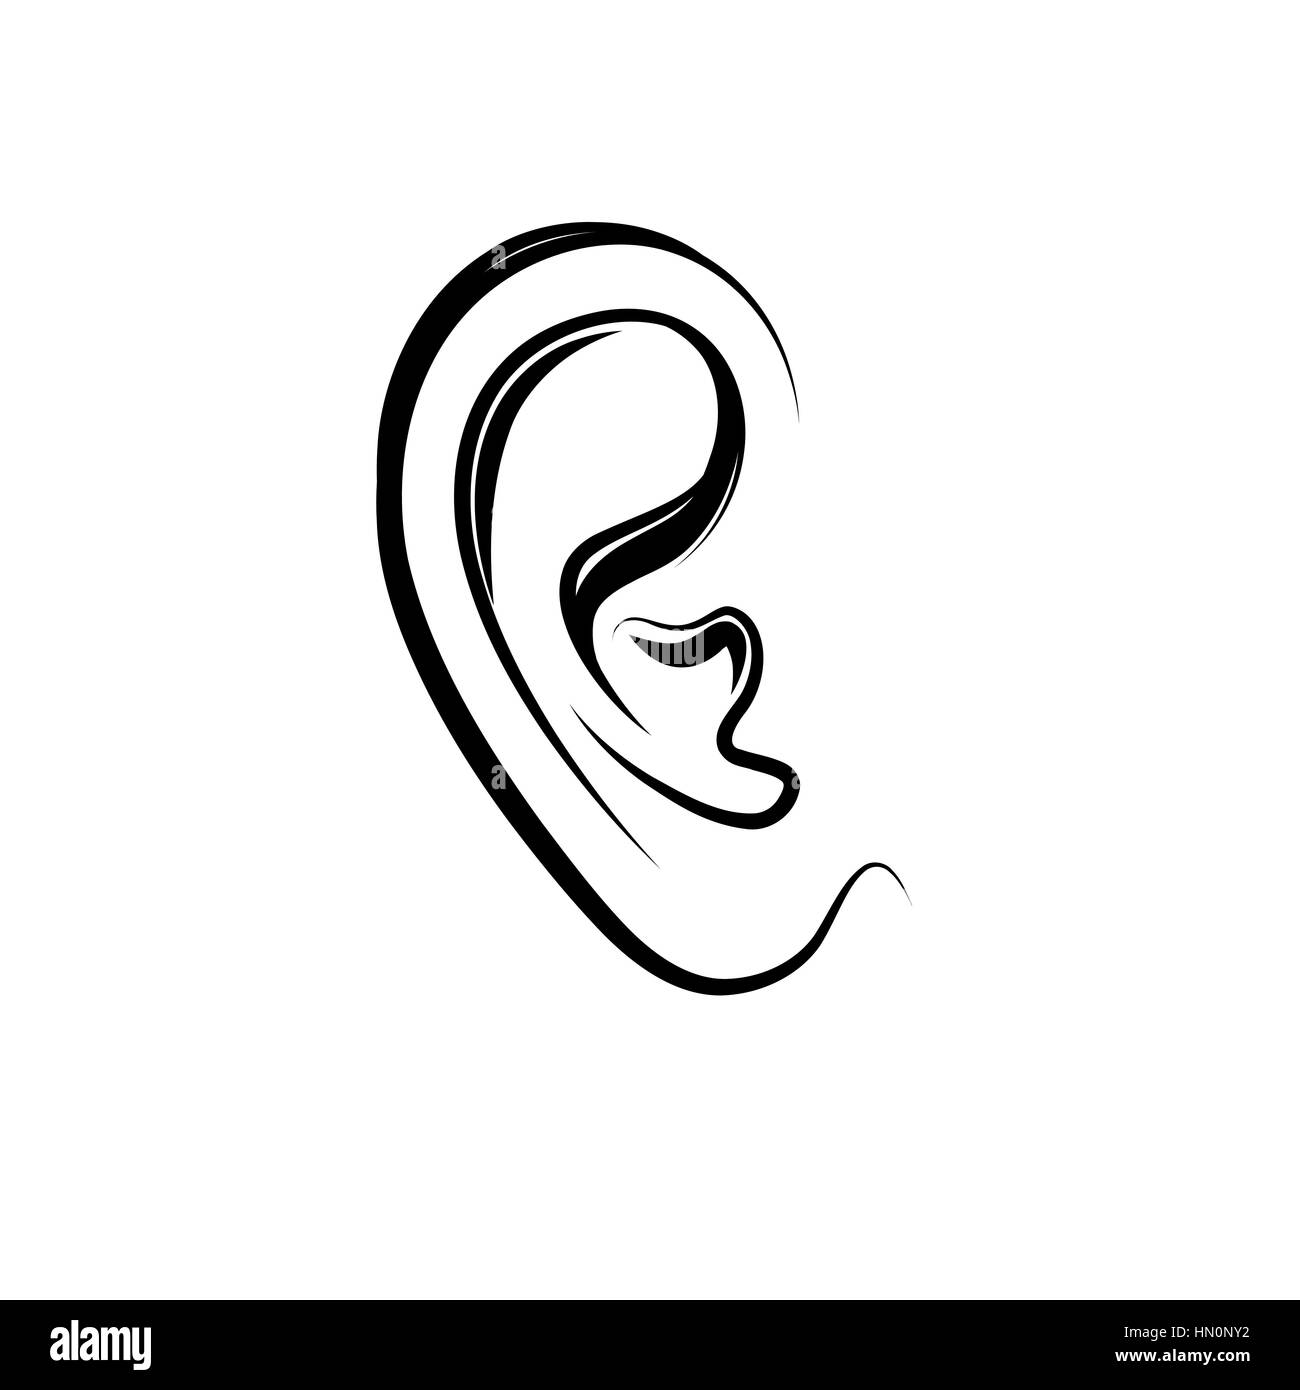 Ear engraving illustration. Human ear isolated over white background - Stock Image